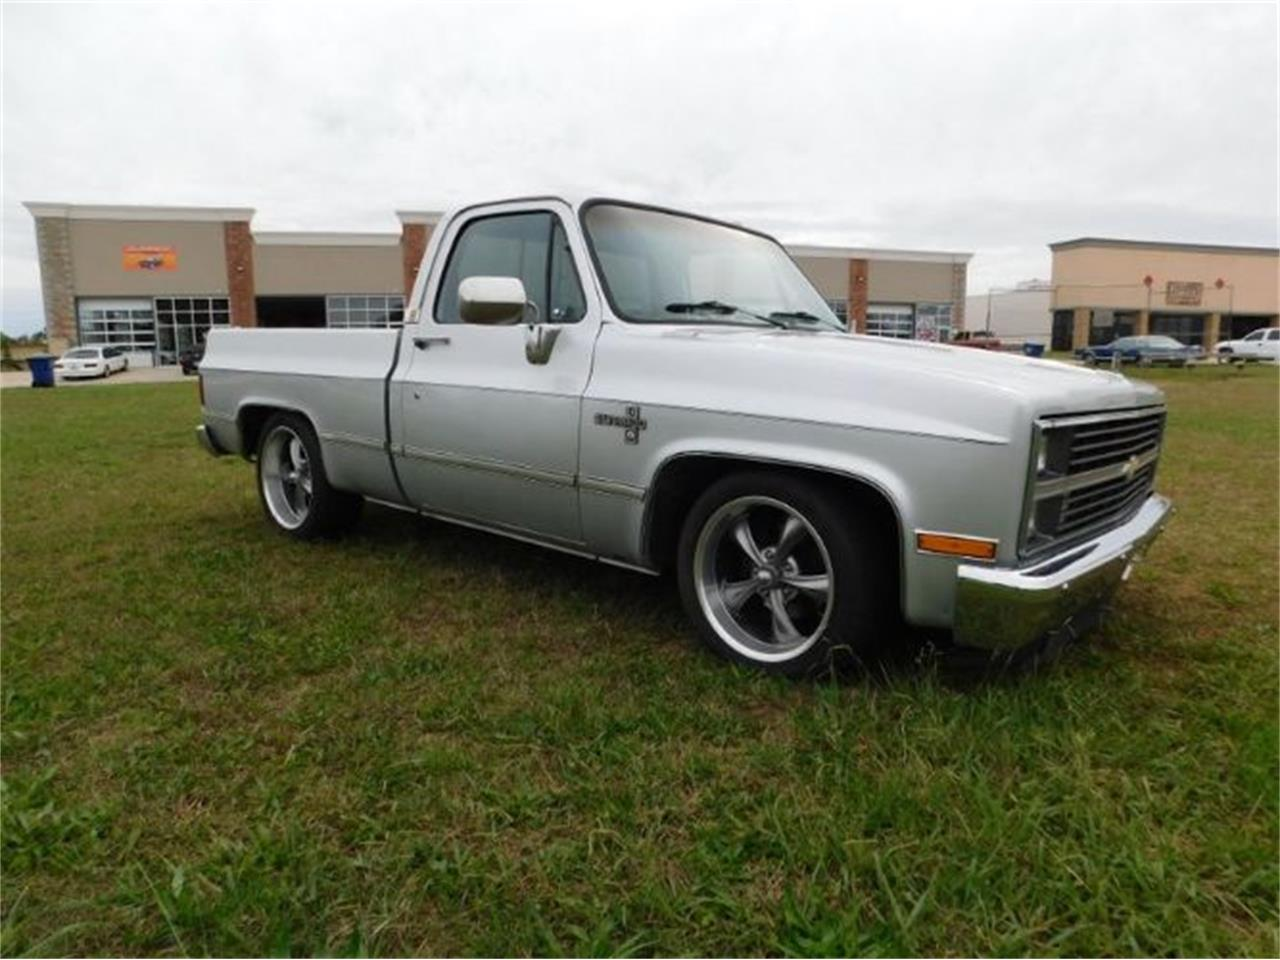 1983 silverado chevrolet 83 classic 1500 ss bed michigan cadillac cc 1985 motor financing inspection insurance transport hemmings carsforsale classiccars